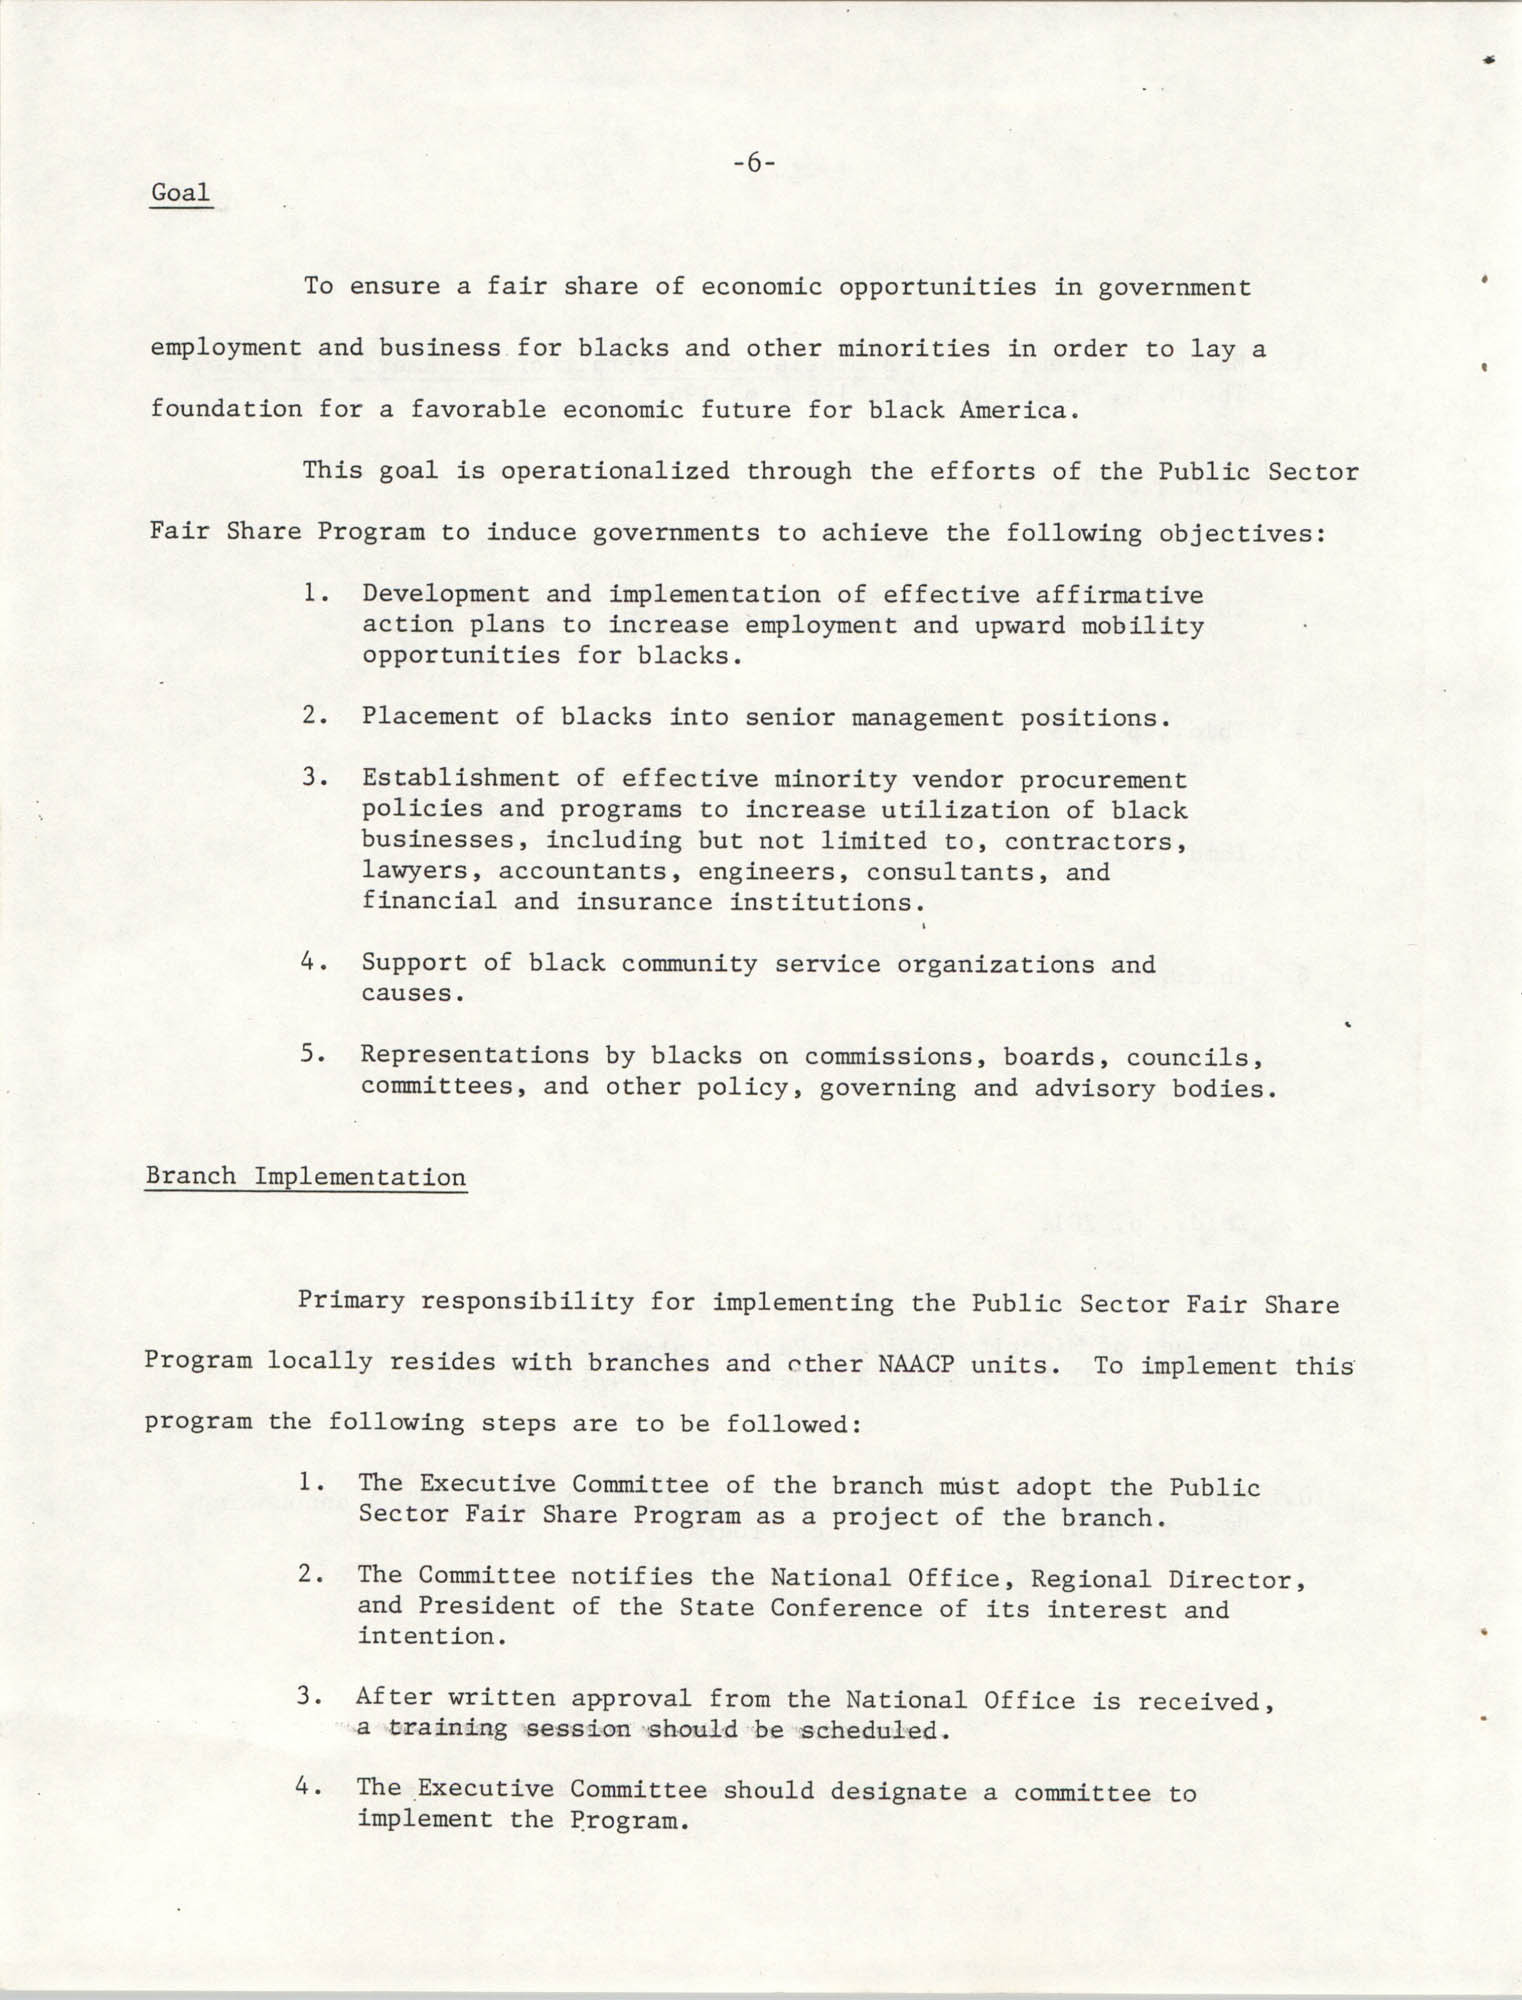 NAACP State Conference and Local Branch Community Development Resource Center Manual, Page 2